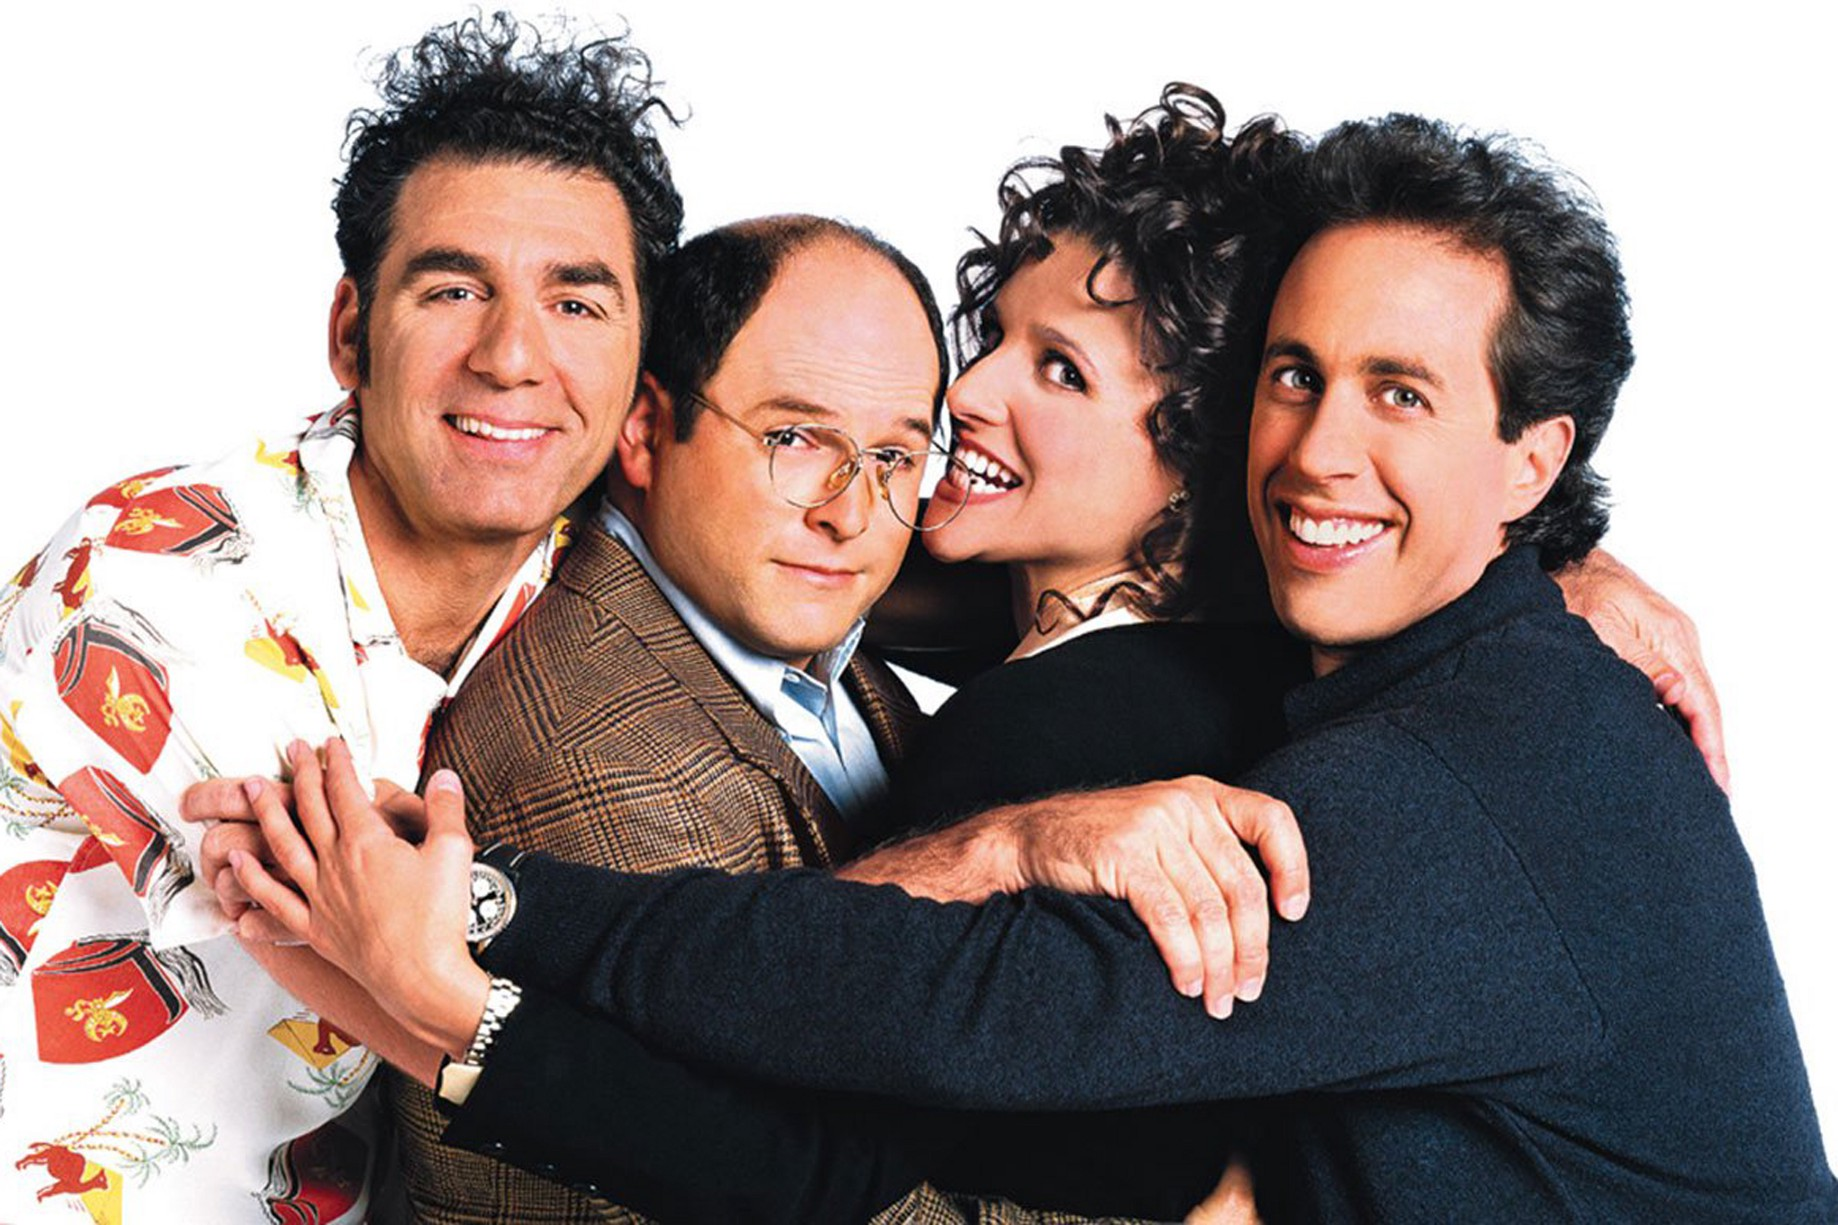 SEINFELD TRIVIA TO BENEFIT THE PSPCA